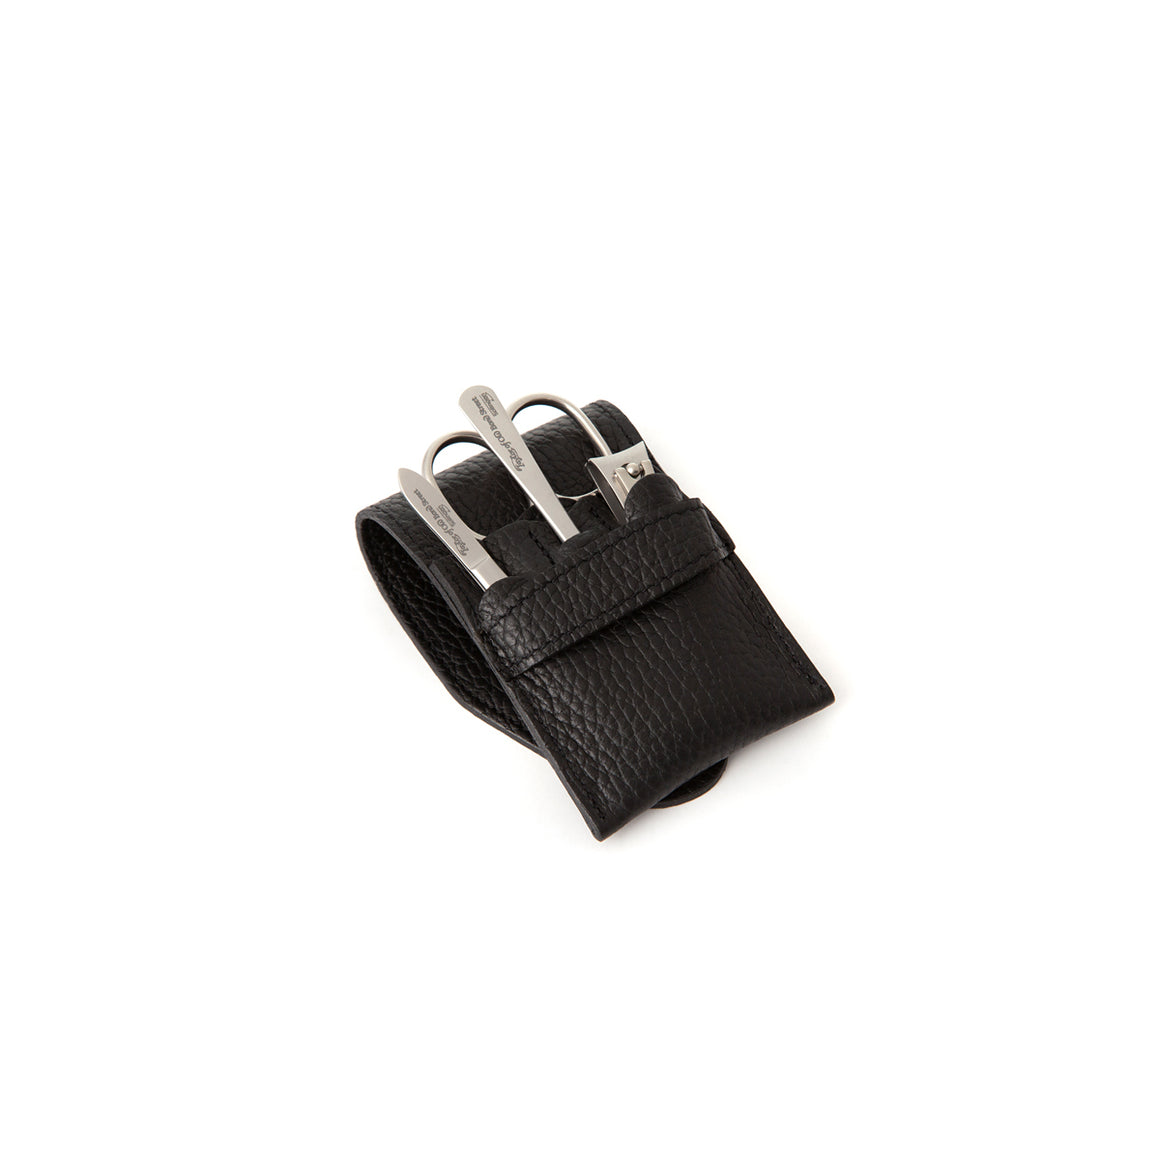 Black Manicure Set with Stainless Steel Implements (XS)